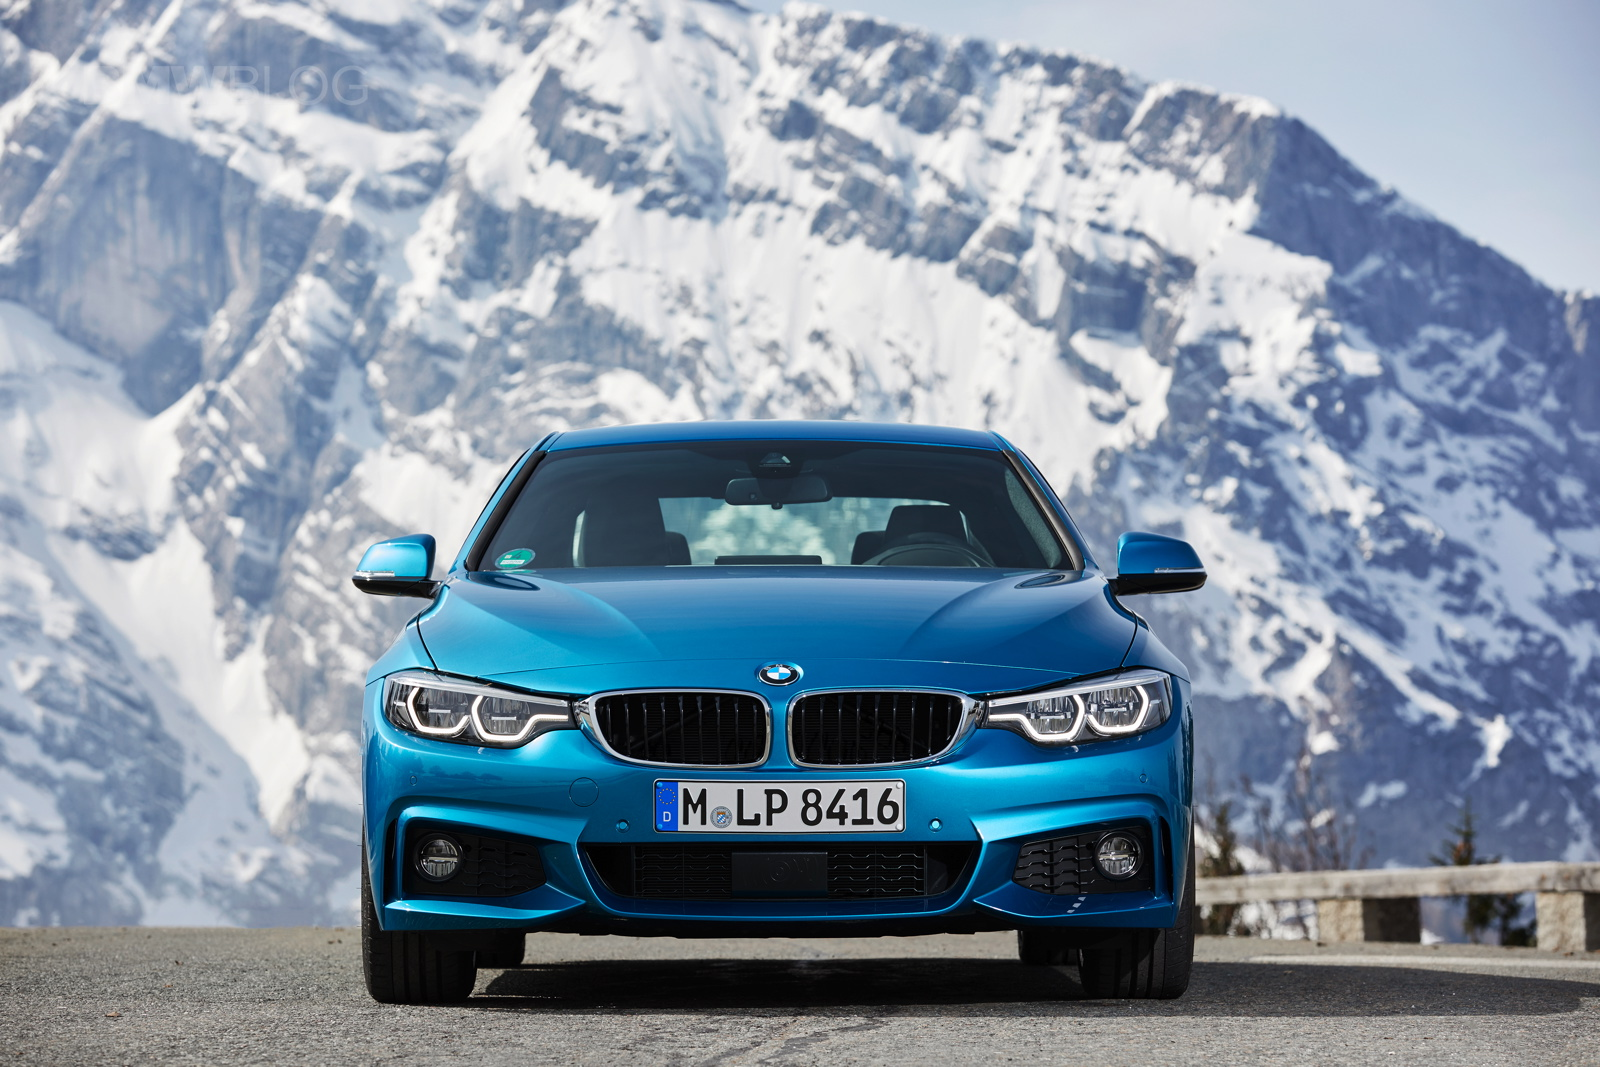 Top Gear Claims Bmw 4 Series Is The Best Car In Its Class